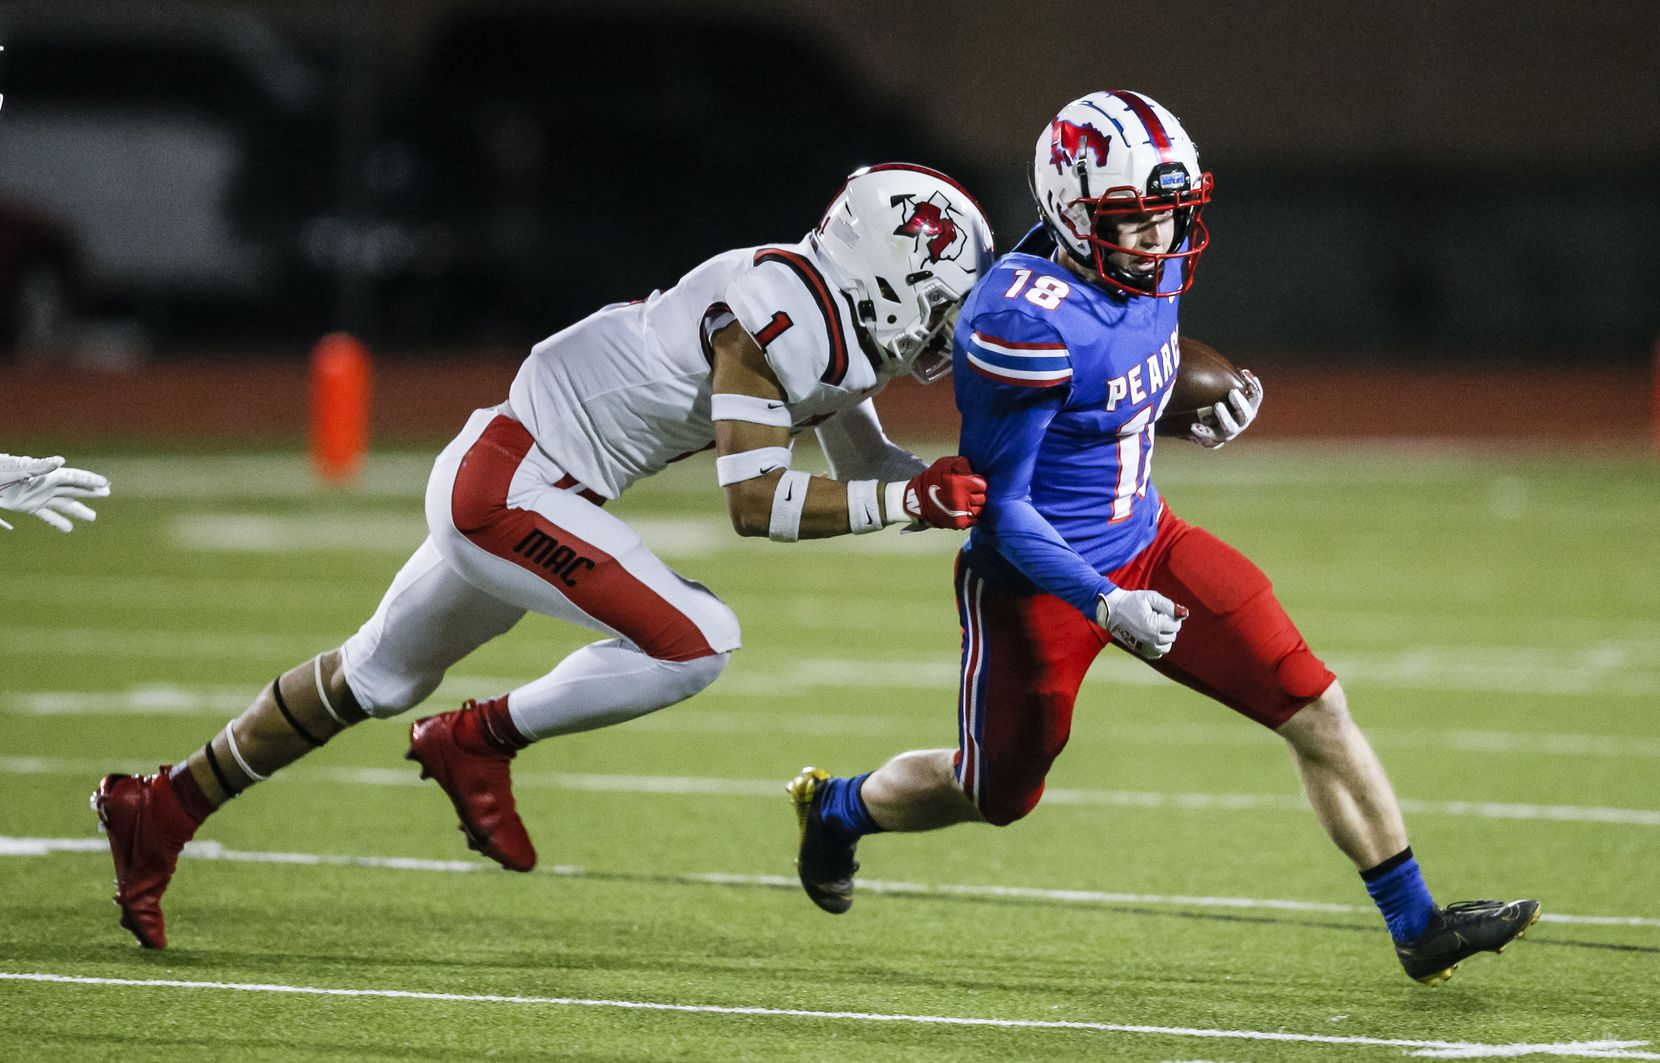 Irving MacArthur senior Roland Jackson (1) tackles JJ Pearce junior running back Adam Velin (18) during the first half of a high school playoff football game at Eagle-Mustang Stadium in Richardson, Thursday, December 3, 2020. (Brandon Wade/Special Contributor)